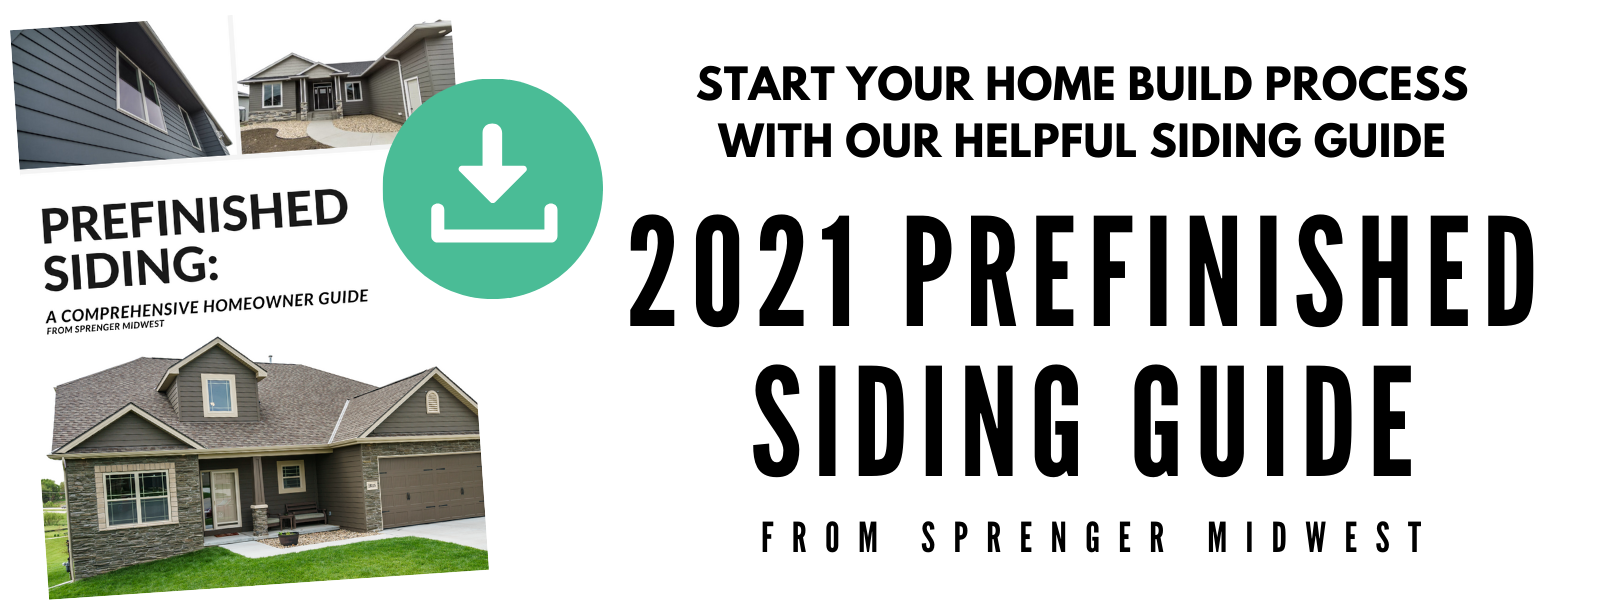 2021 Home Builder Guide from Sprenger Midwest Starting with Siding